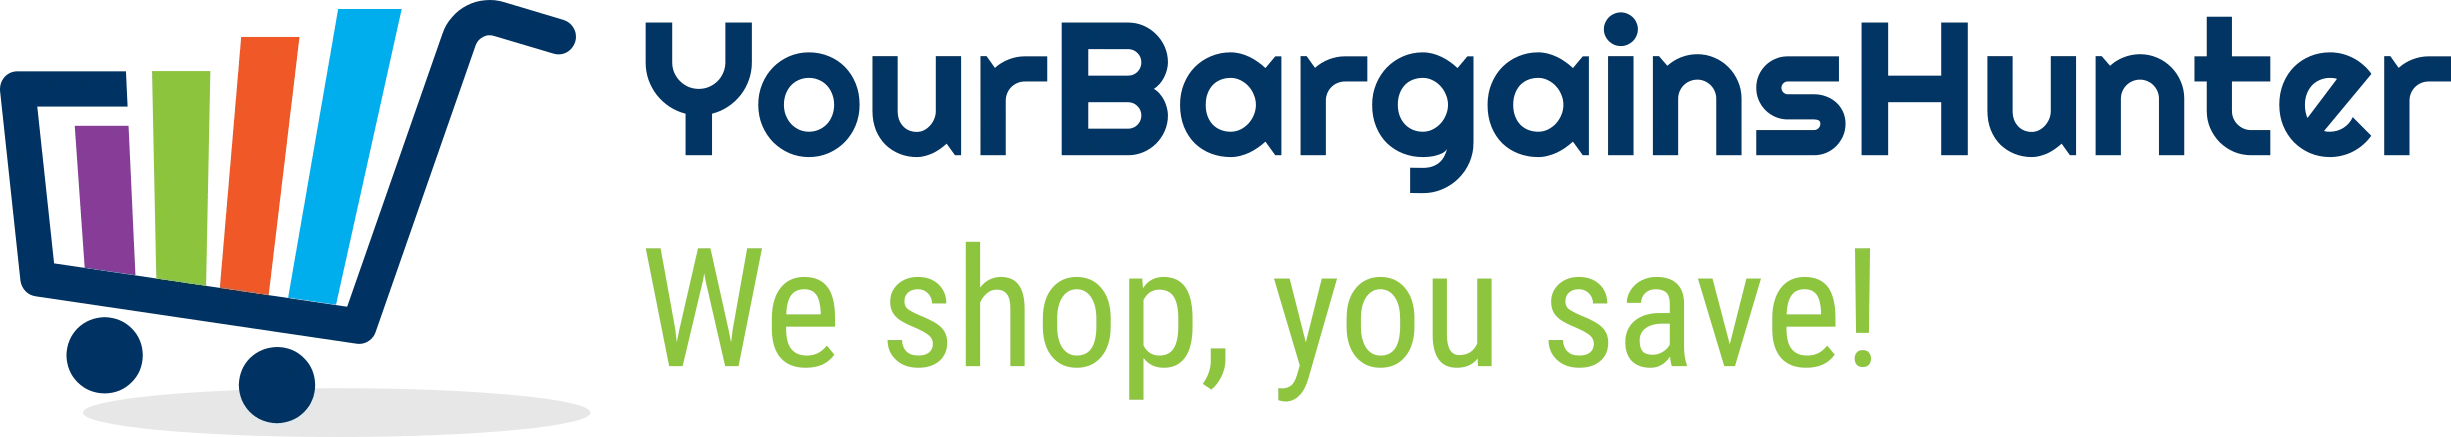 YOURBARGAINSHUNTER  We hunt, you save time and money!